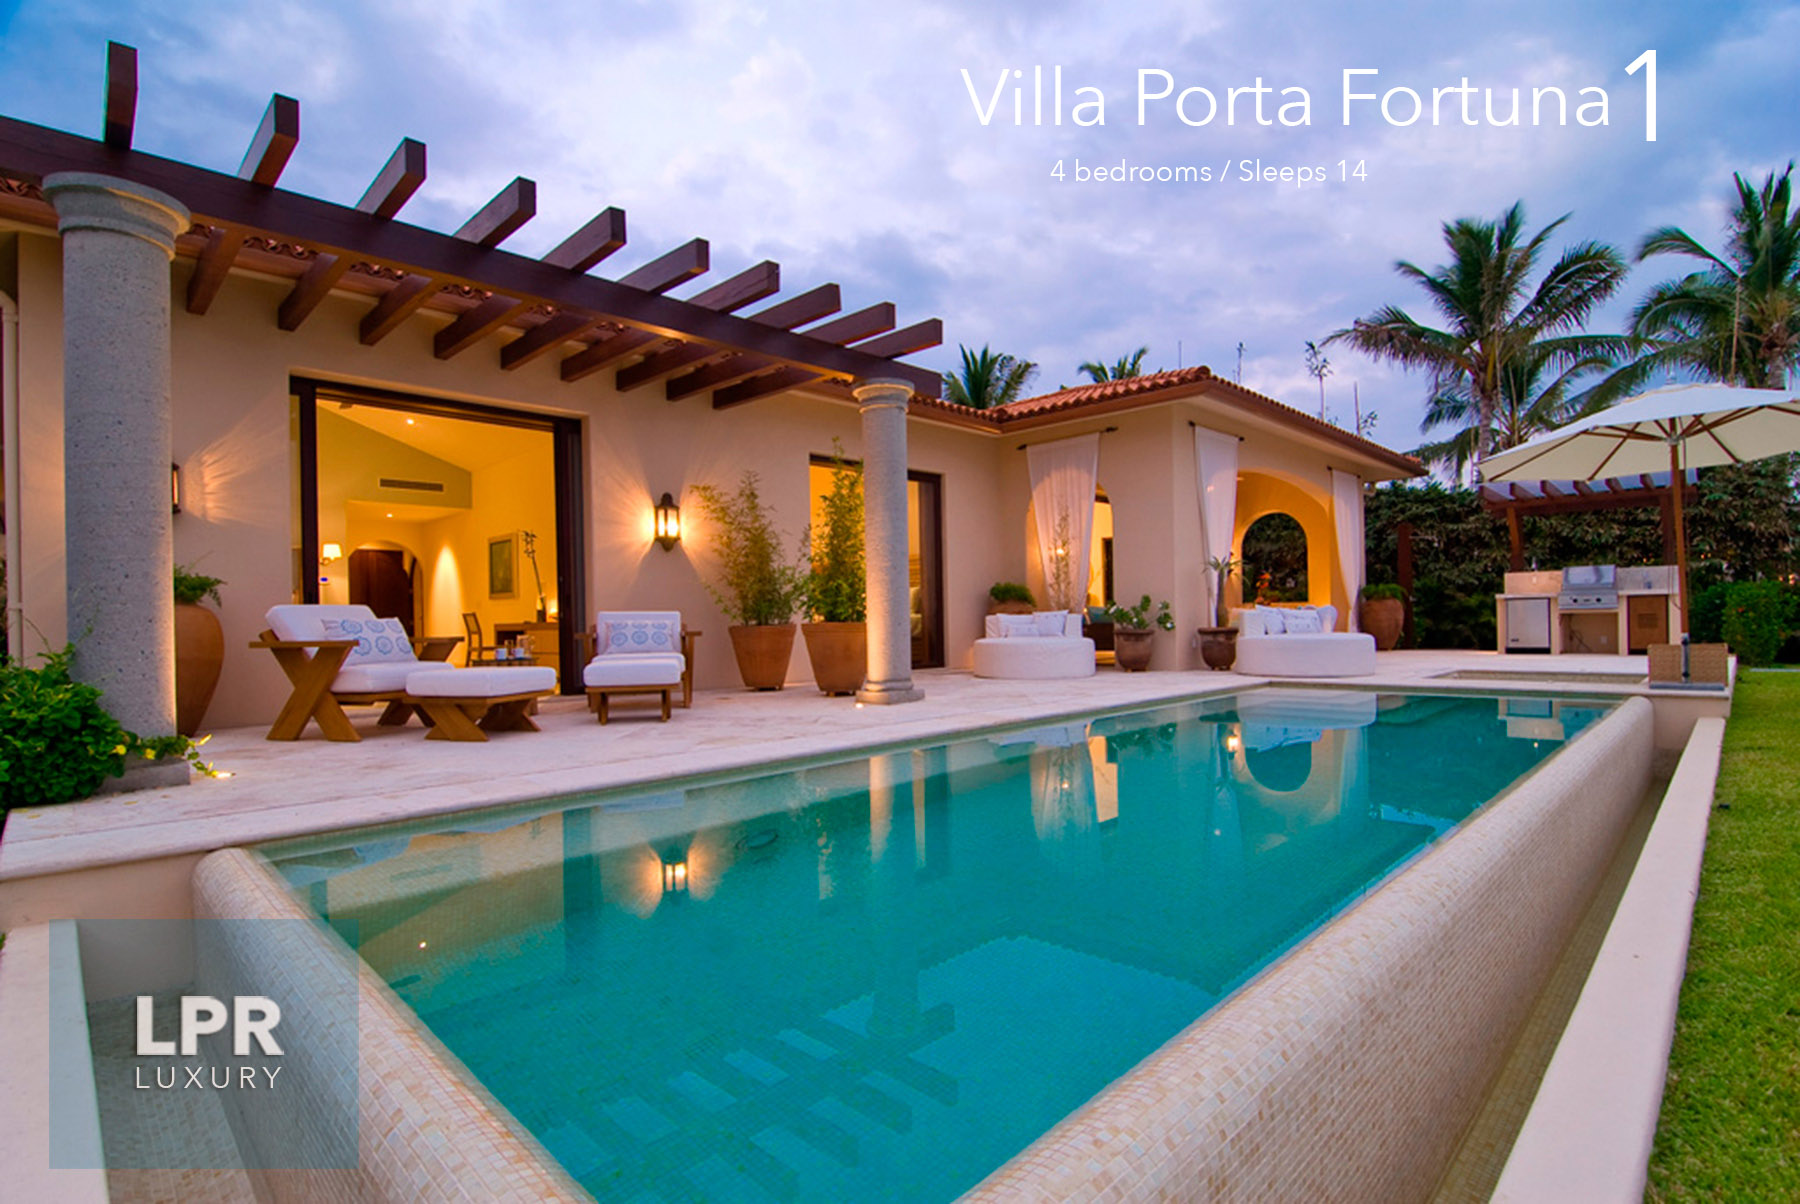 Villa Porta Fortuna 1 at the Punta Mita Resort, Riviera Nayarit, Mexico